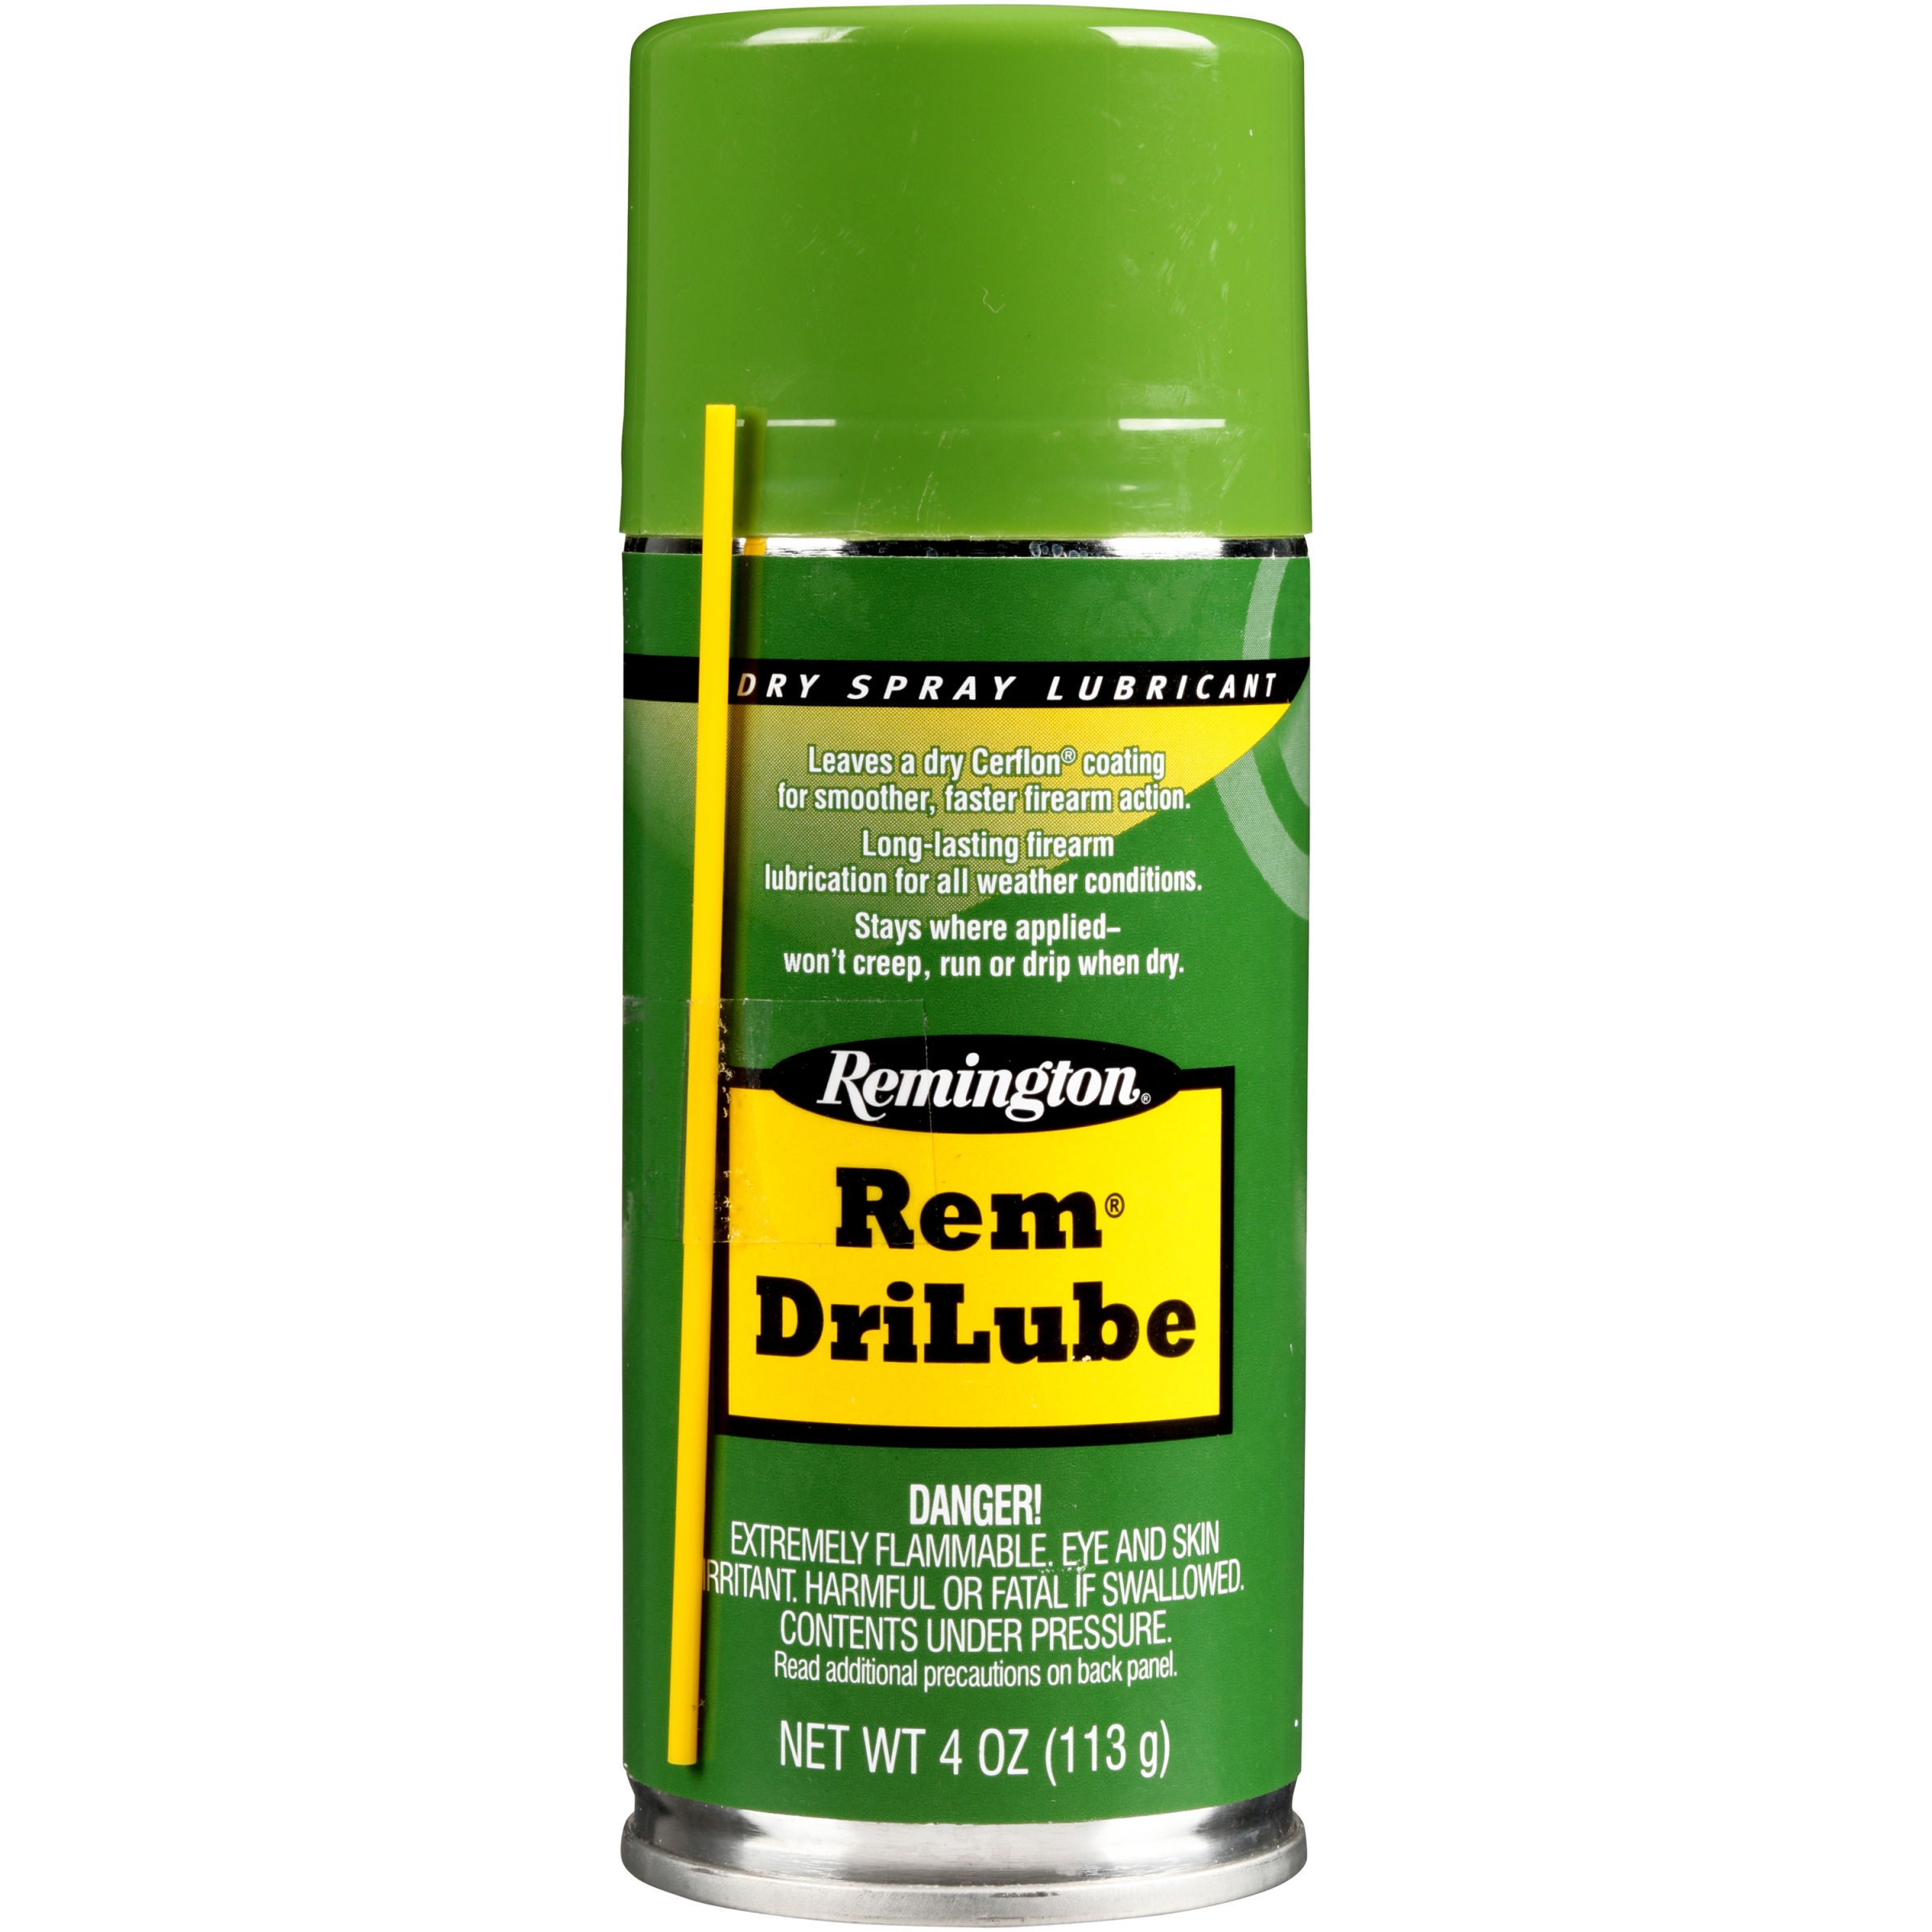 Remington® Rem® DriLube Dry Spray Lubricant 4 oz. Aerosol Can